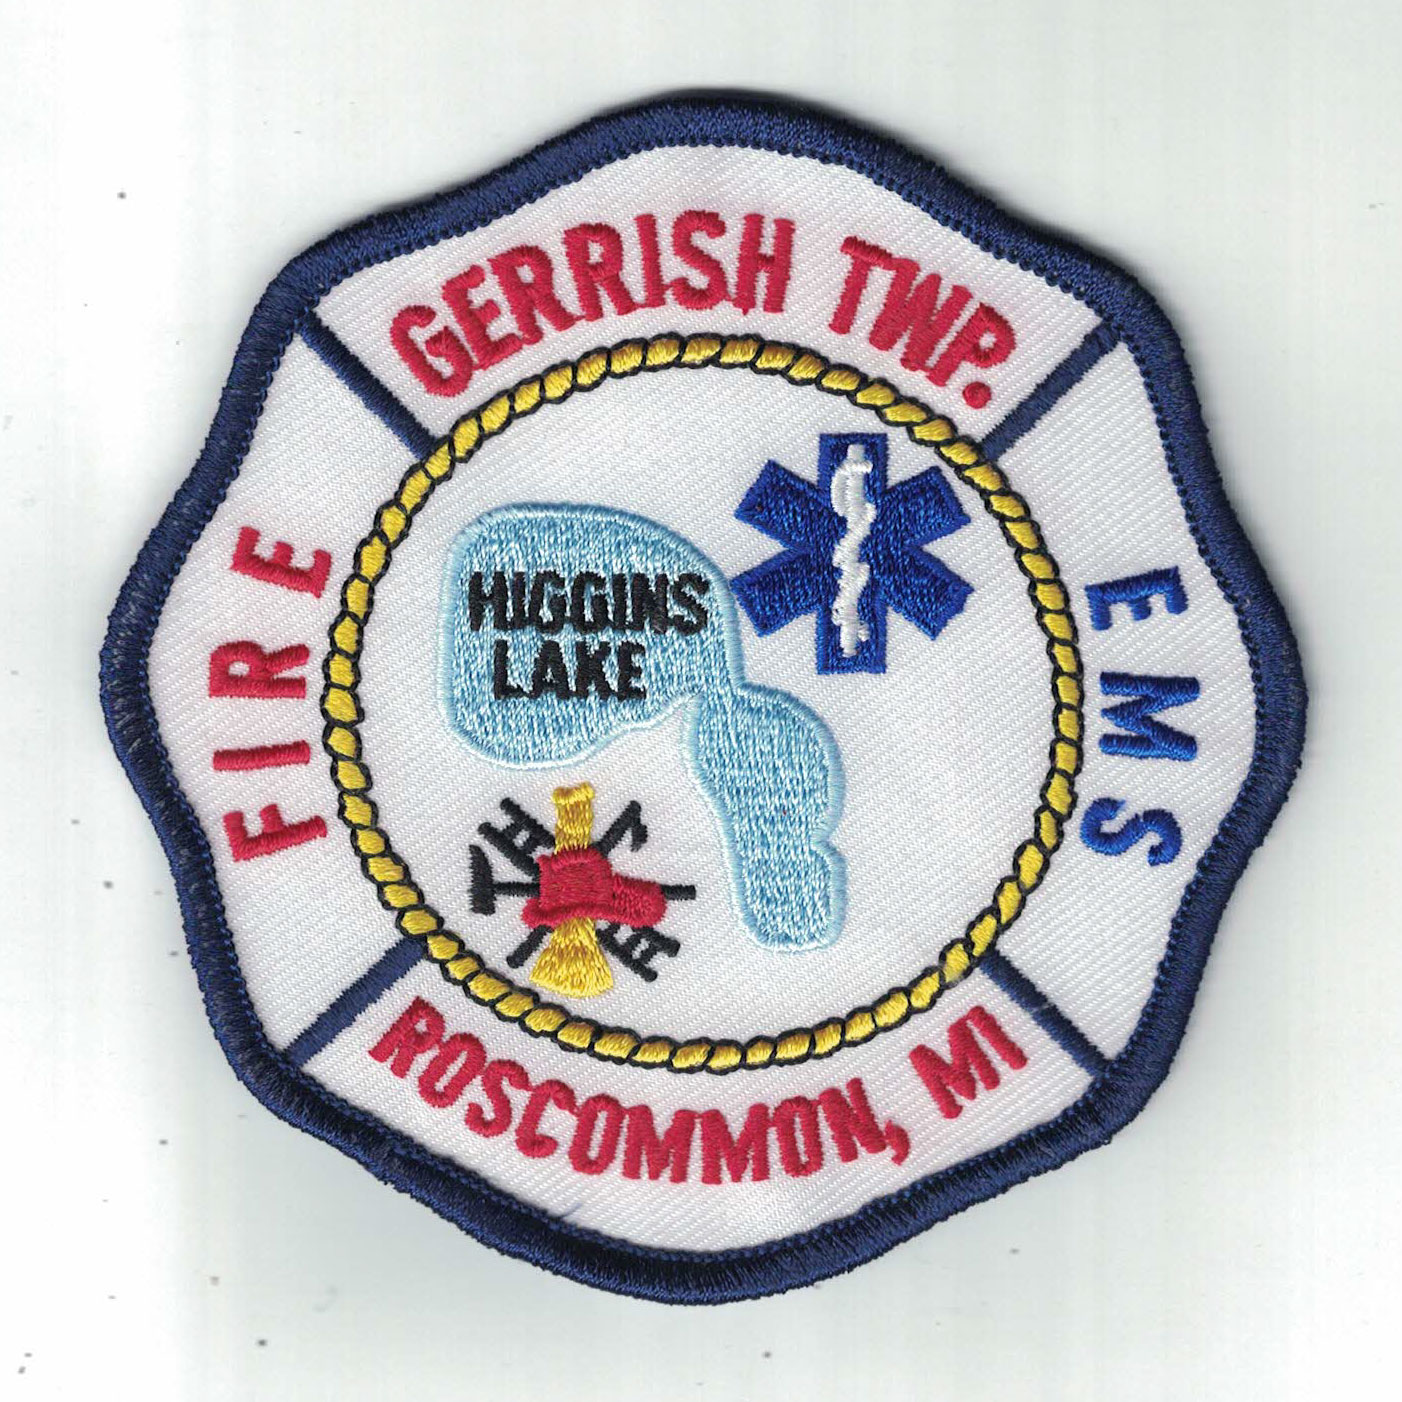 Gerrish Fire Fighters Association patch